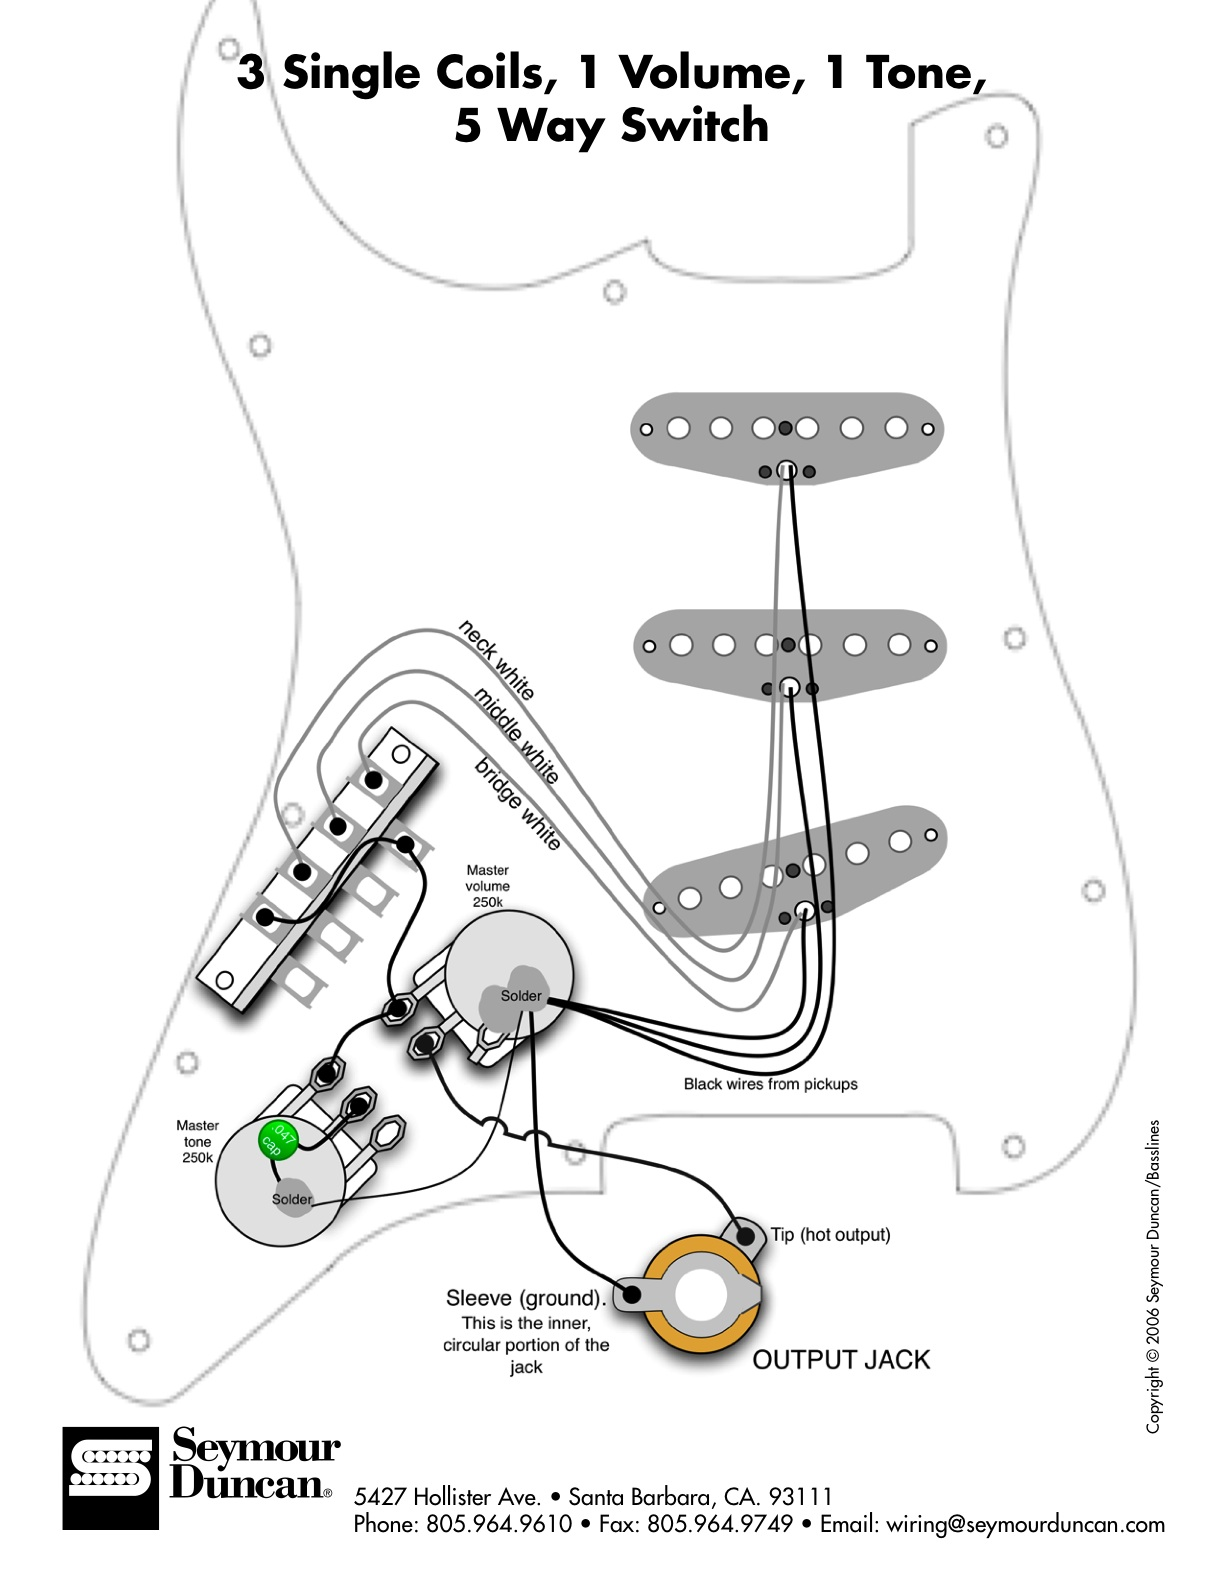 gitbox culture blog guitars guitarists and guitar culture engaging in some good old fashioned diy this week a bee in my bonnet to sort out my black strat i decided that i m sick of paying surly techs at